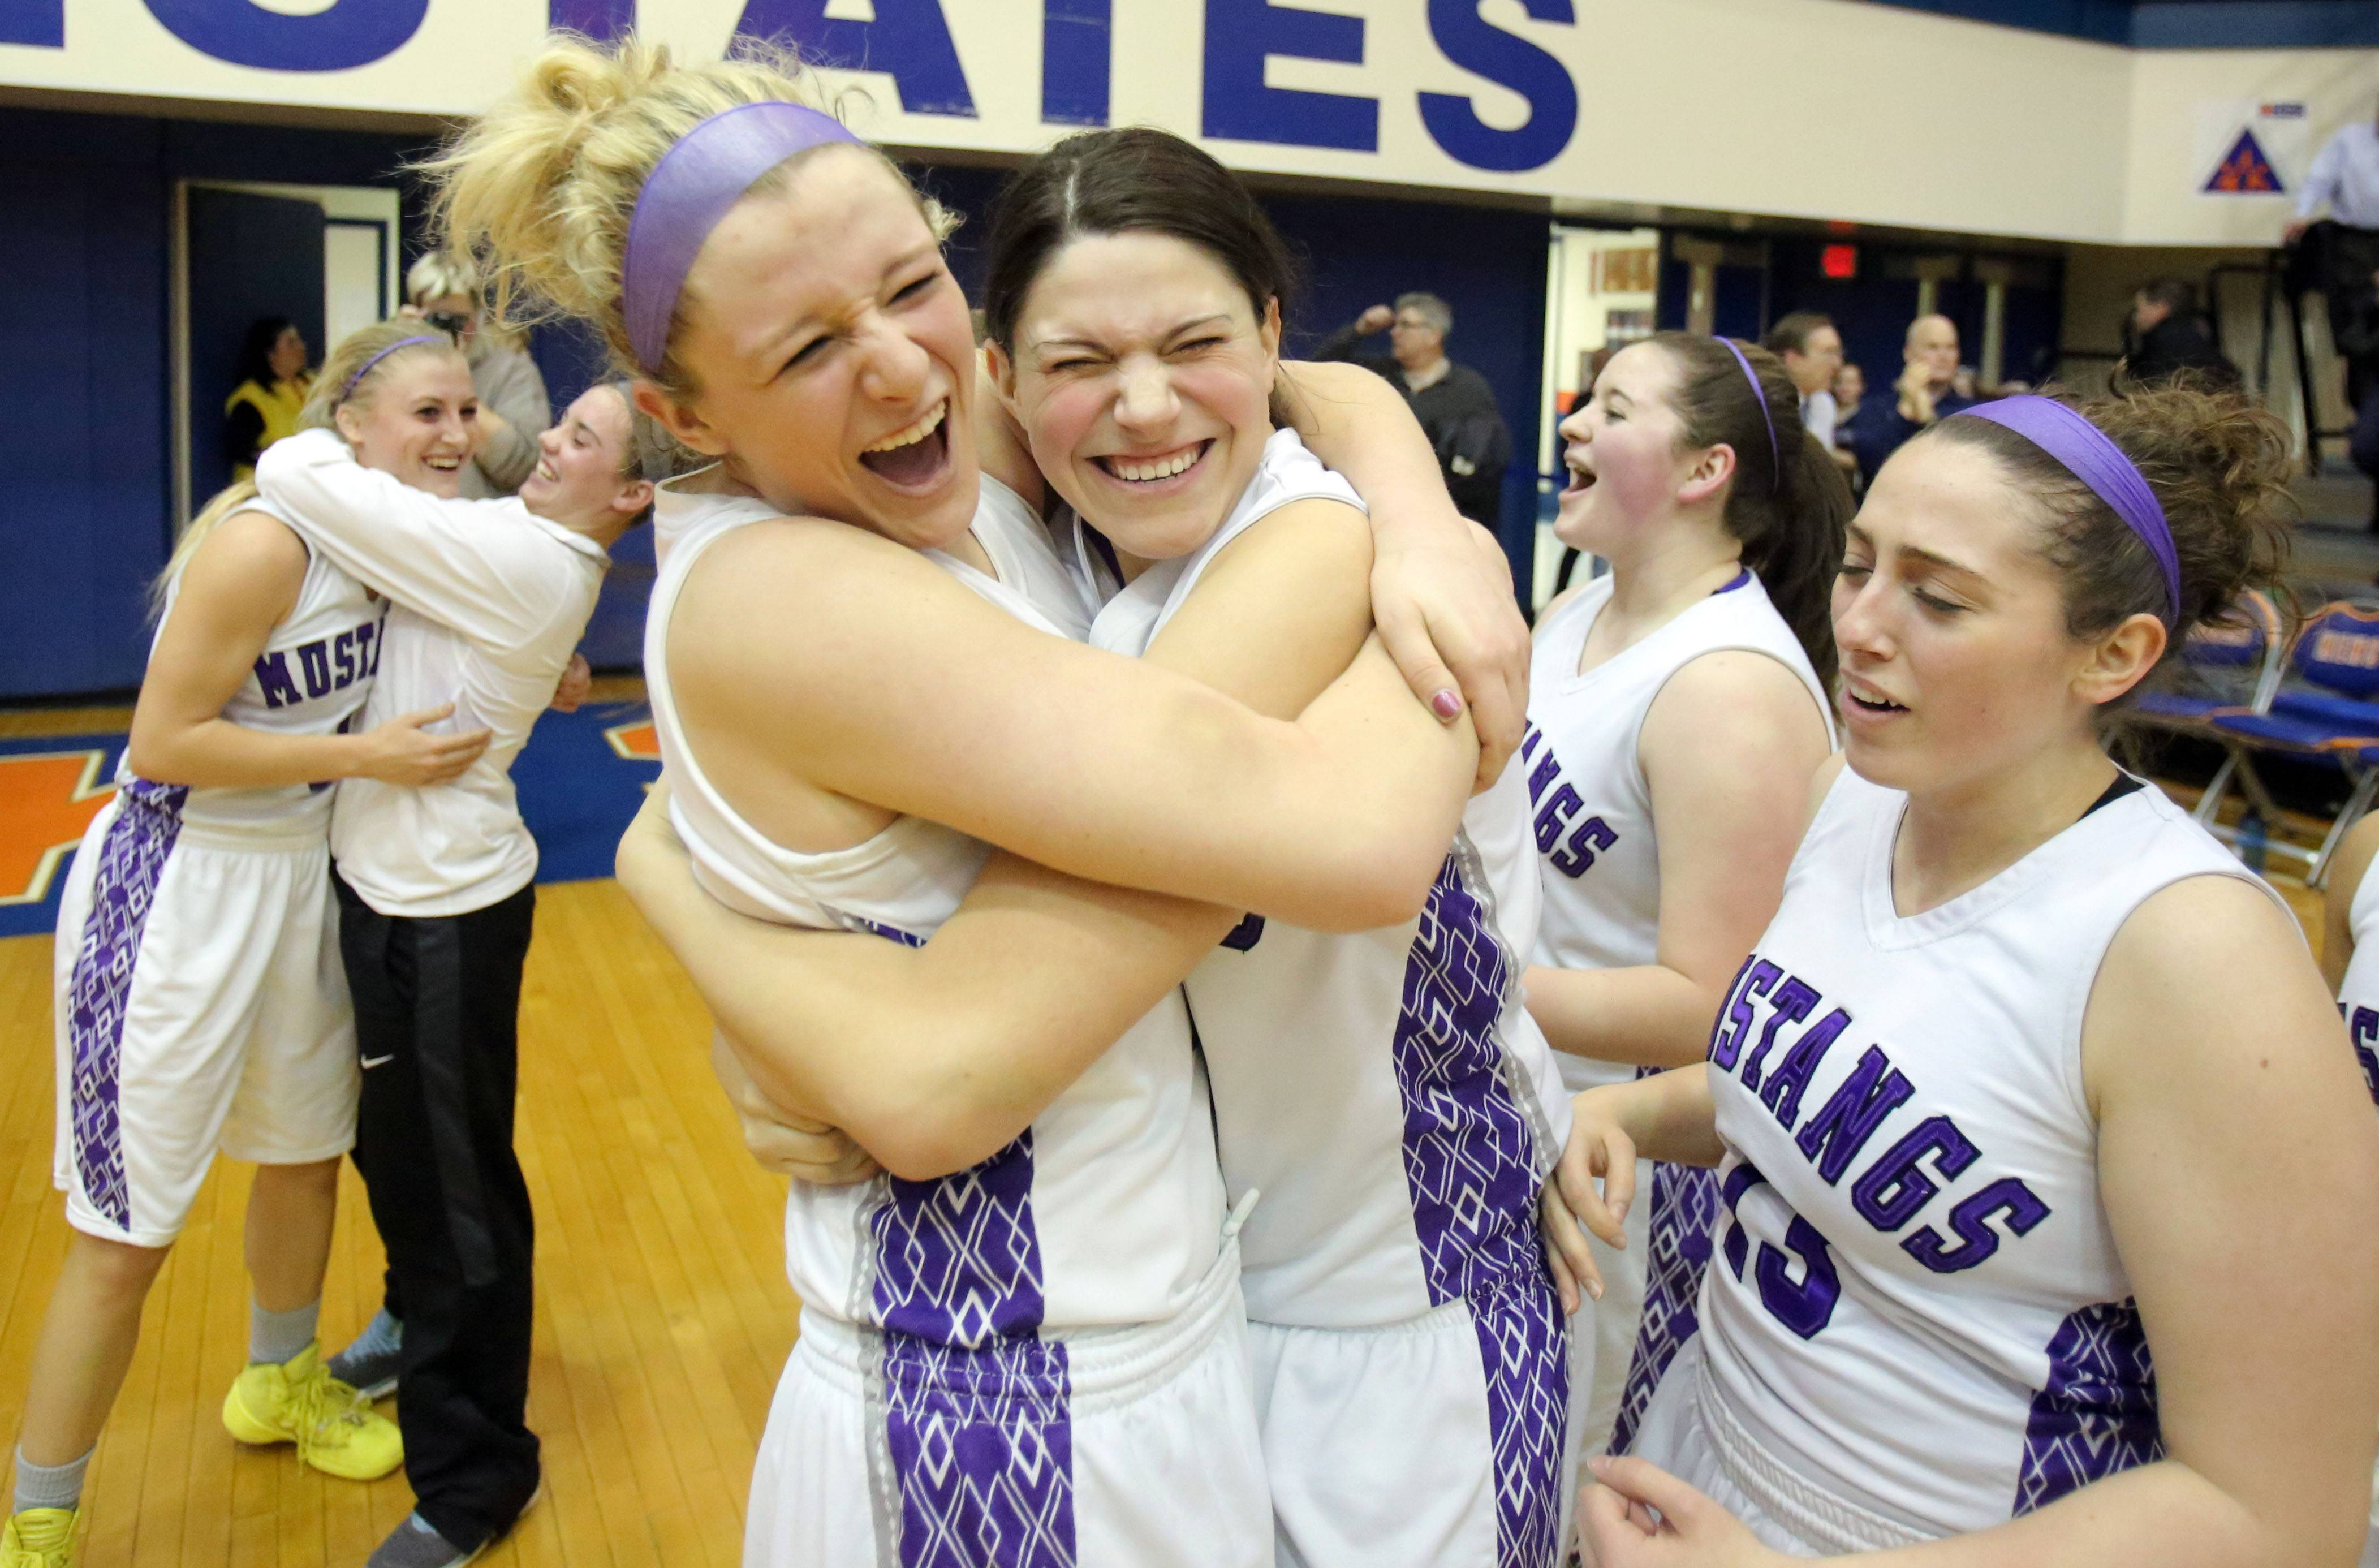 Rolling Meadows' Jenny Vliet, foreground left, embraces teammate Ashley Montanez, after the Mustangs beat New Trier 60-43 in the Class 4A supersectional at Hoffman Estates on Monday.